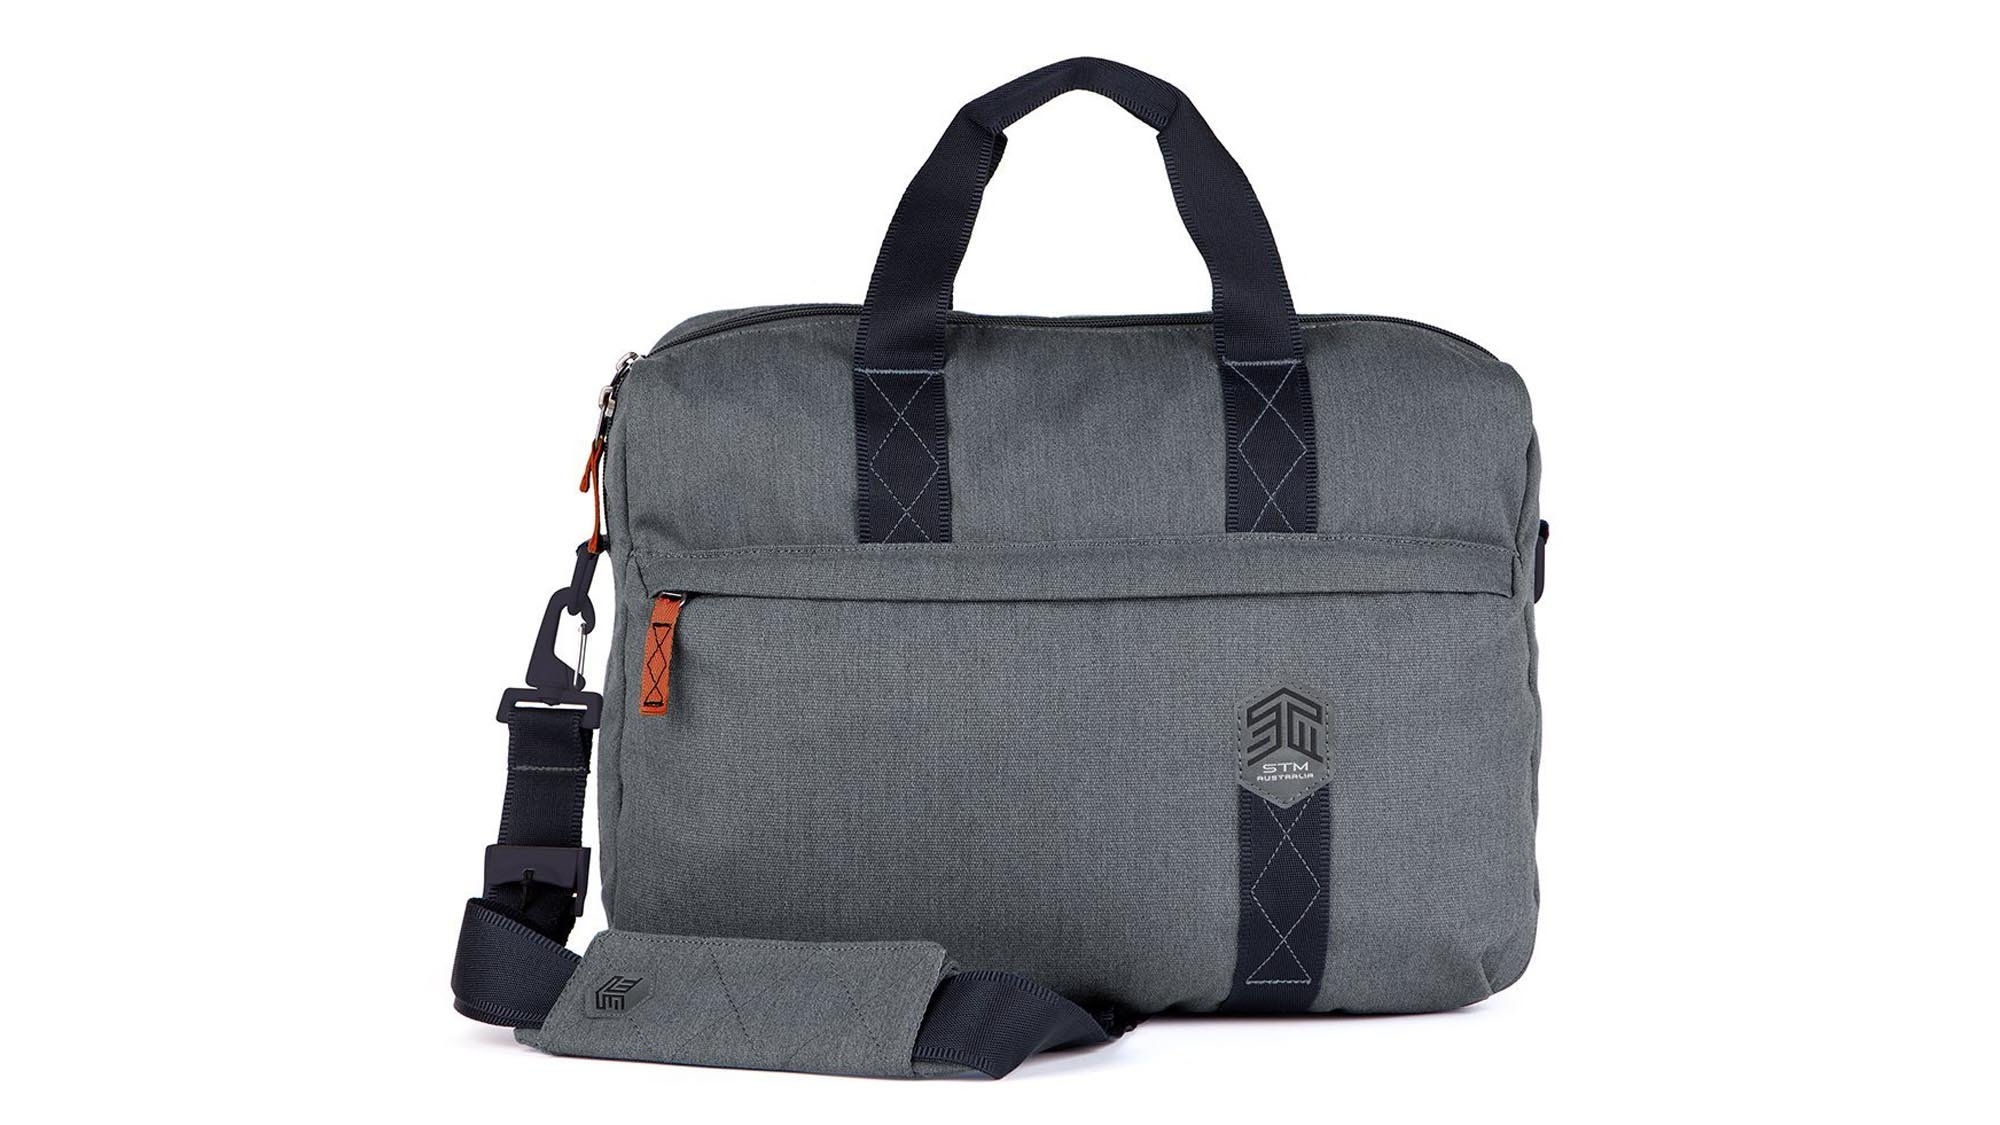 5bbfec4a939a Best laptop bag 2018  The best laptop backpacks